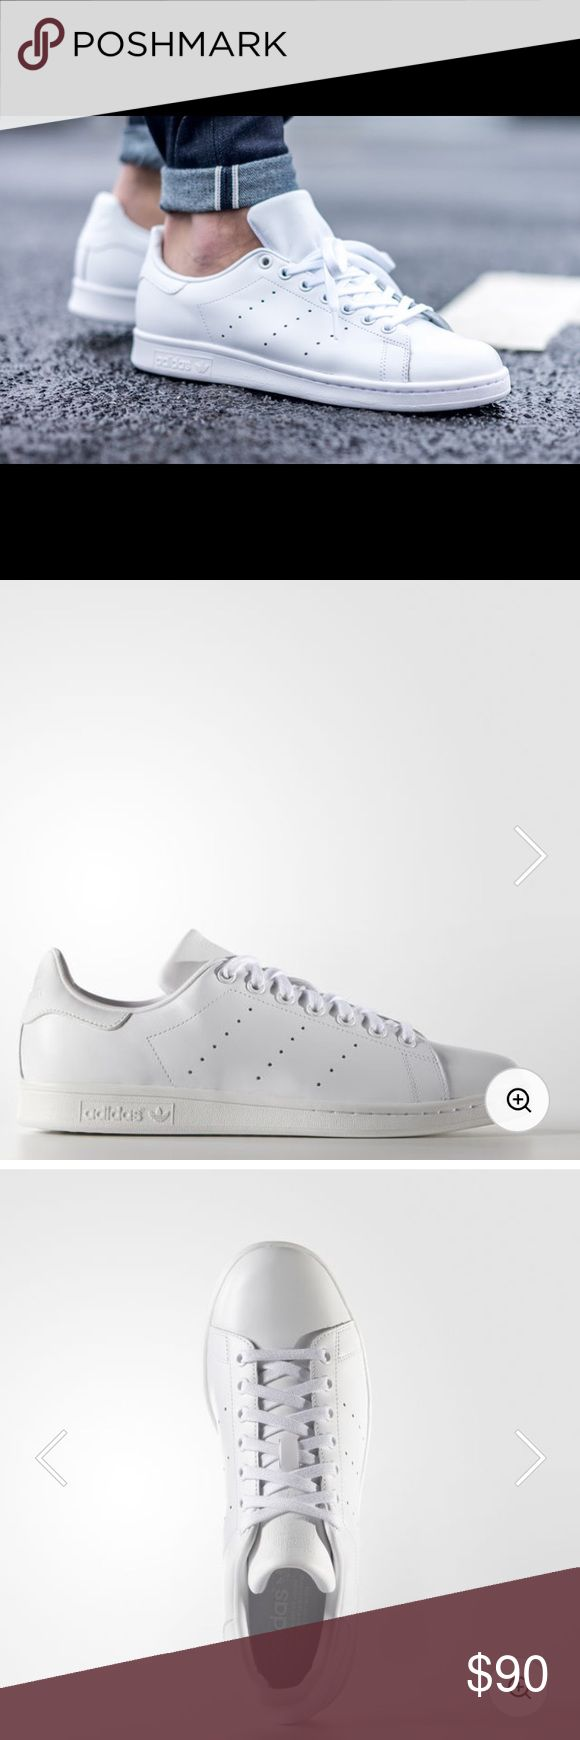 Adidas Stan Smith Just like its namesake, the Stan Smith rose to fame on tennis courts in the '70s. Today the legendary look steps out in a smooth leather upper with clean, all-white look. Features the authentic perforated 3-Stripes and rubber cupsole. Full grain leather upper Synthetic leather lining Perforated 3-Stripes Rubber cupsole adidas Shoes Sneakers